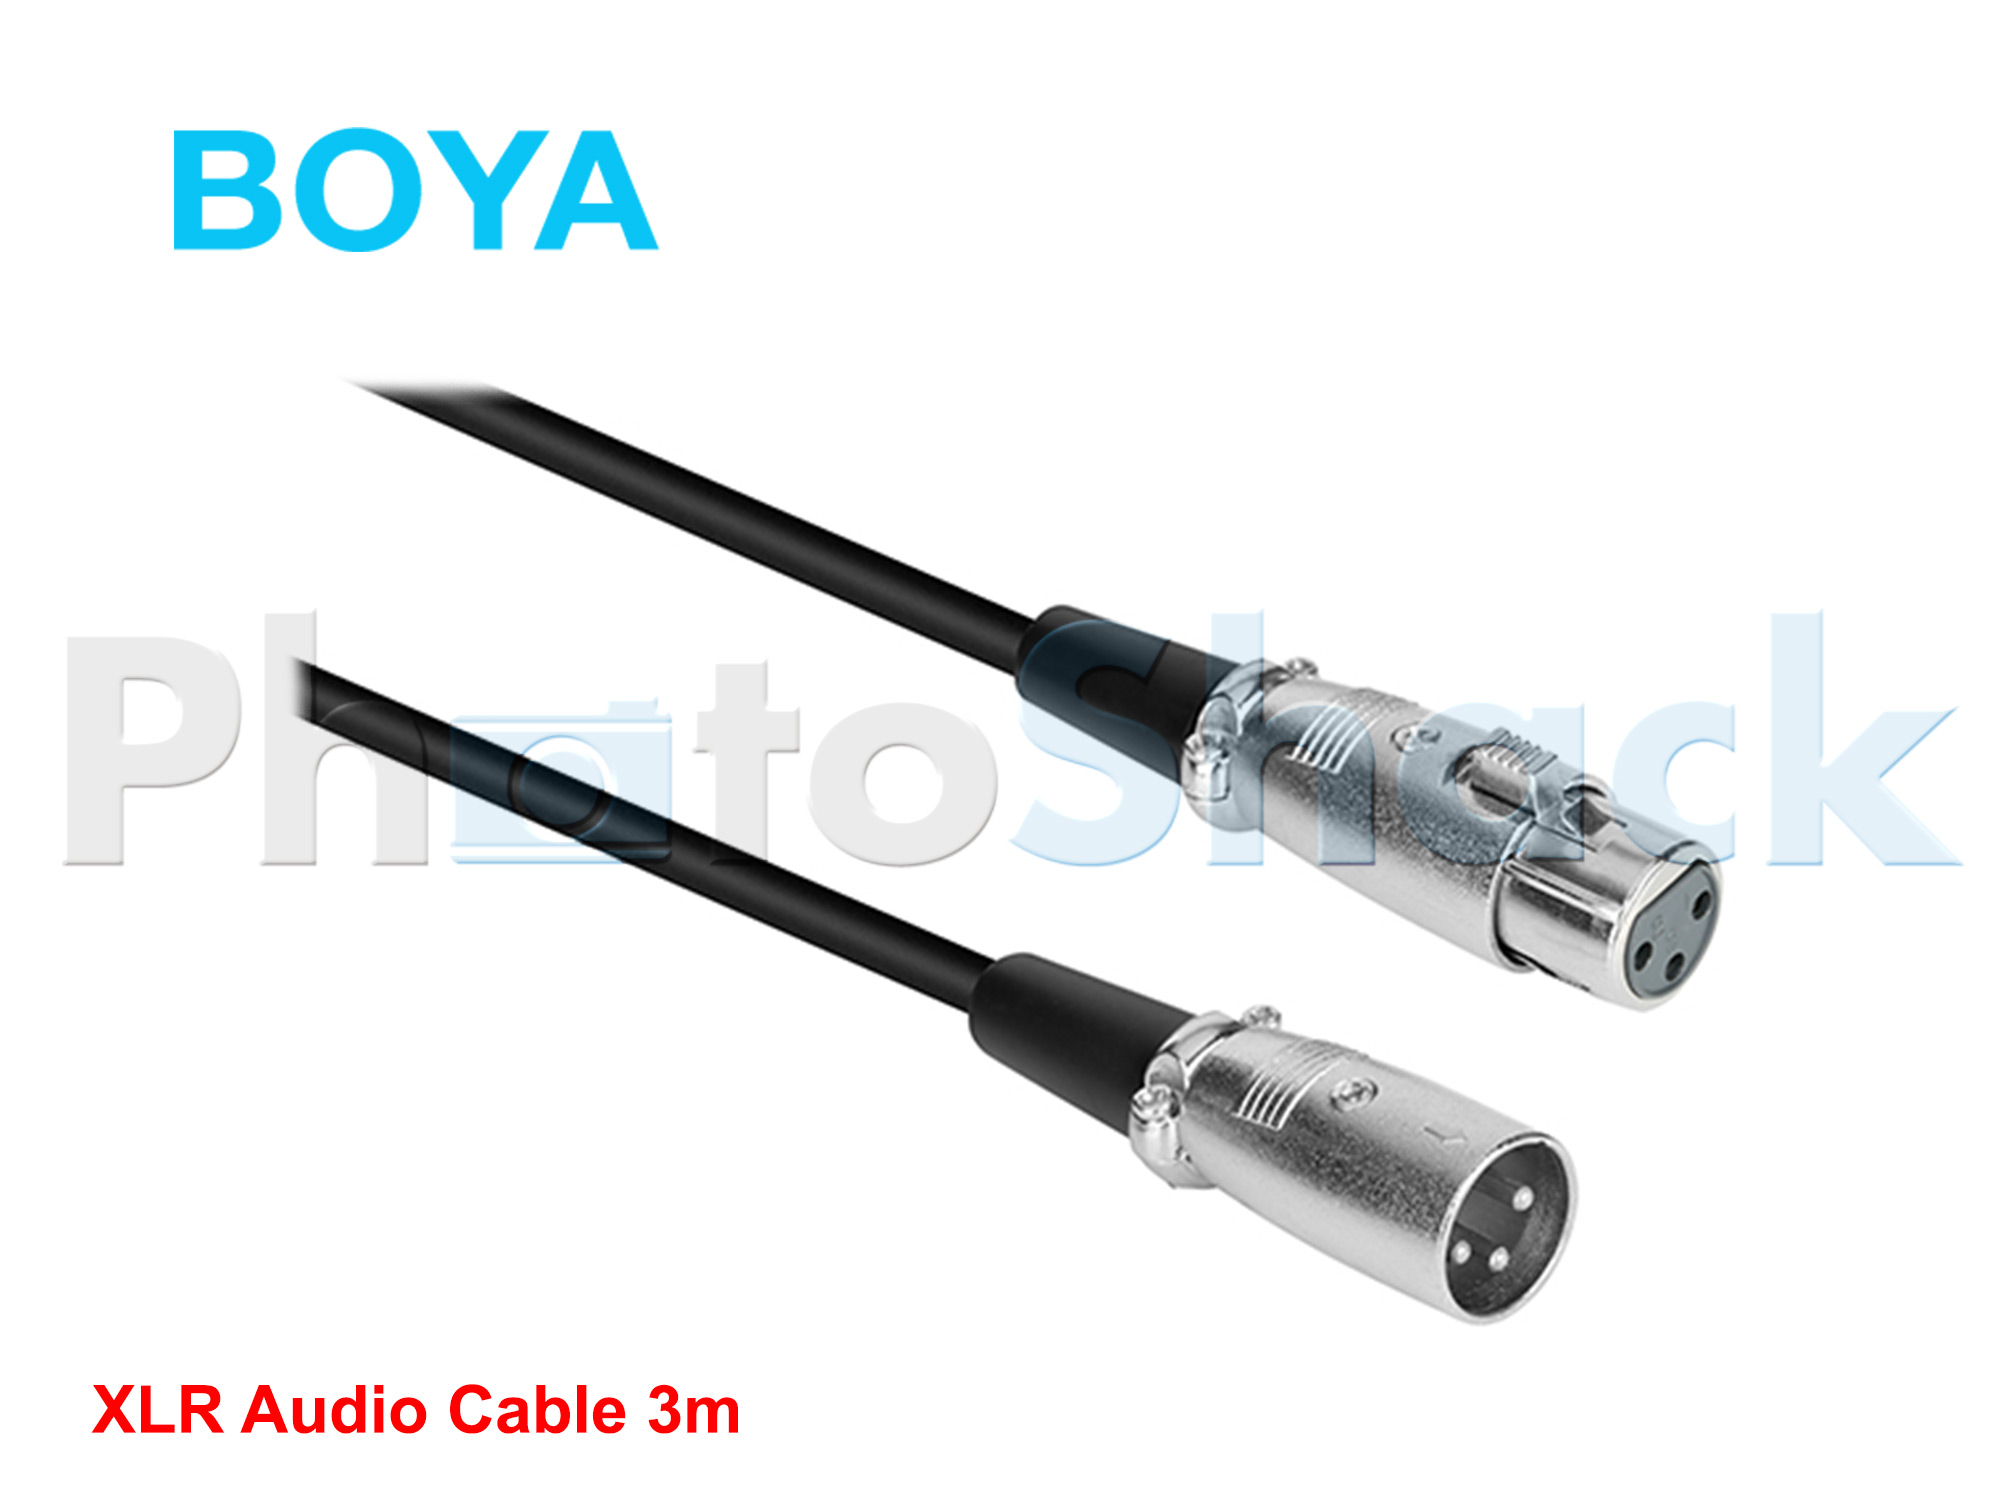 Boya XLR Audio Cable 3m